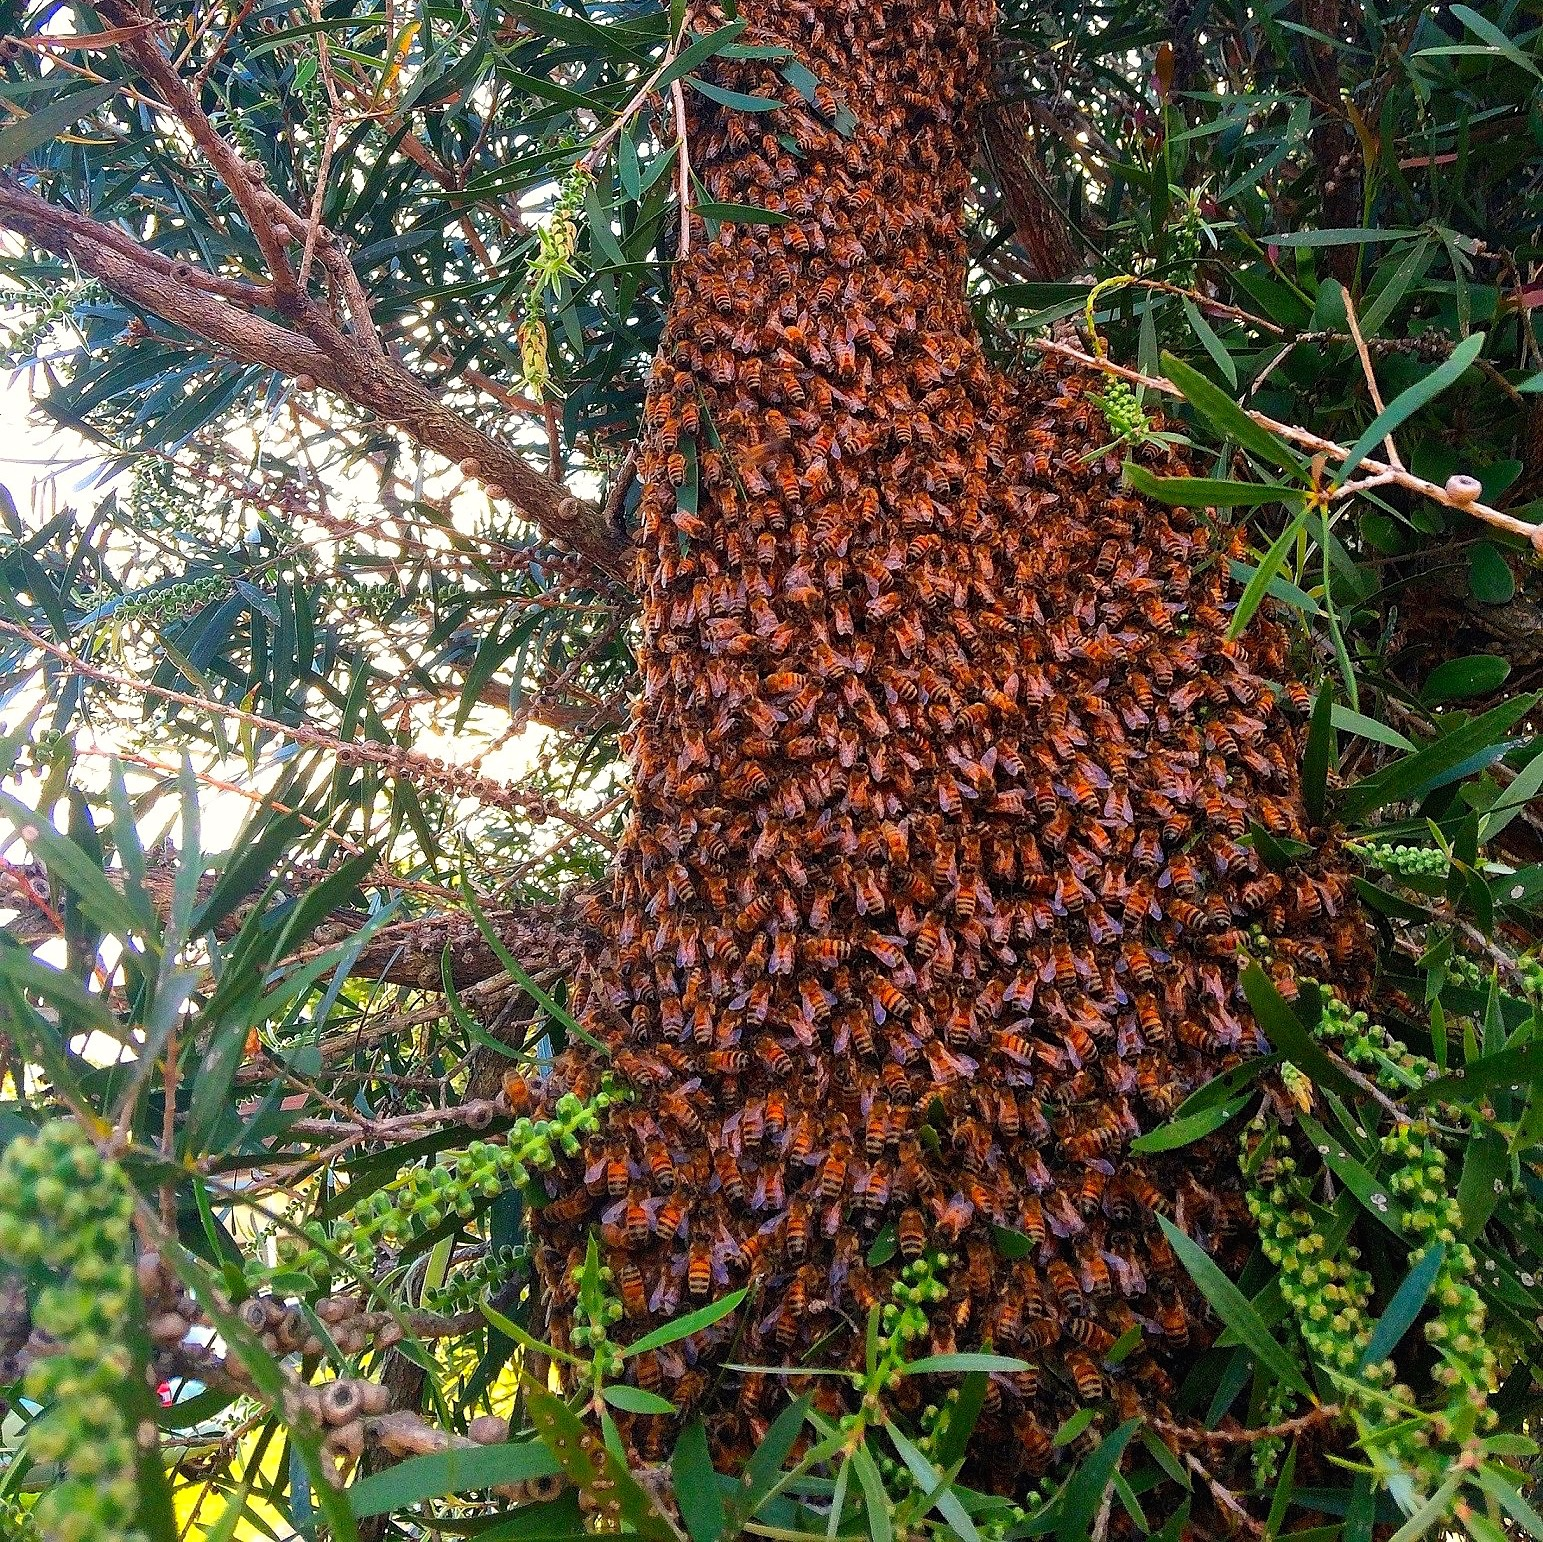 swarm hanging from a tree